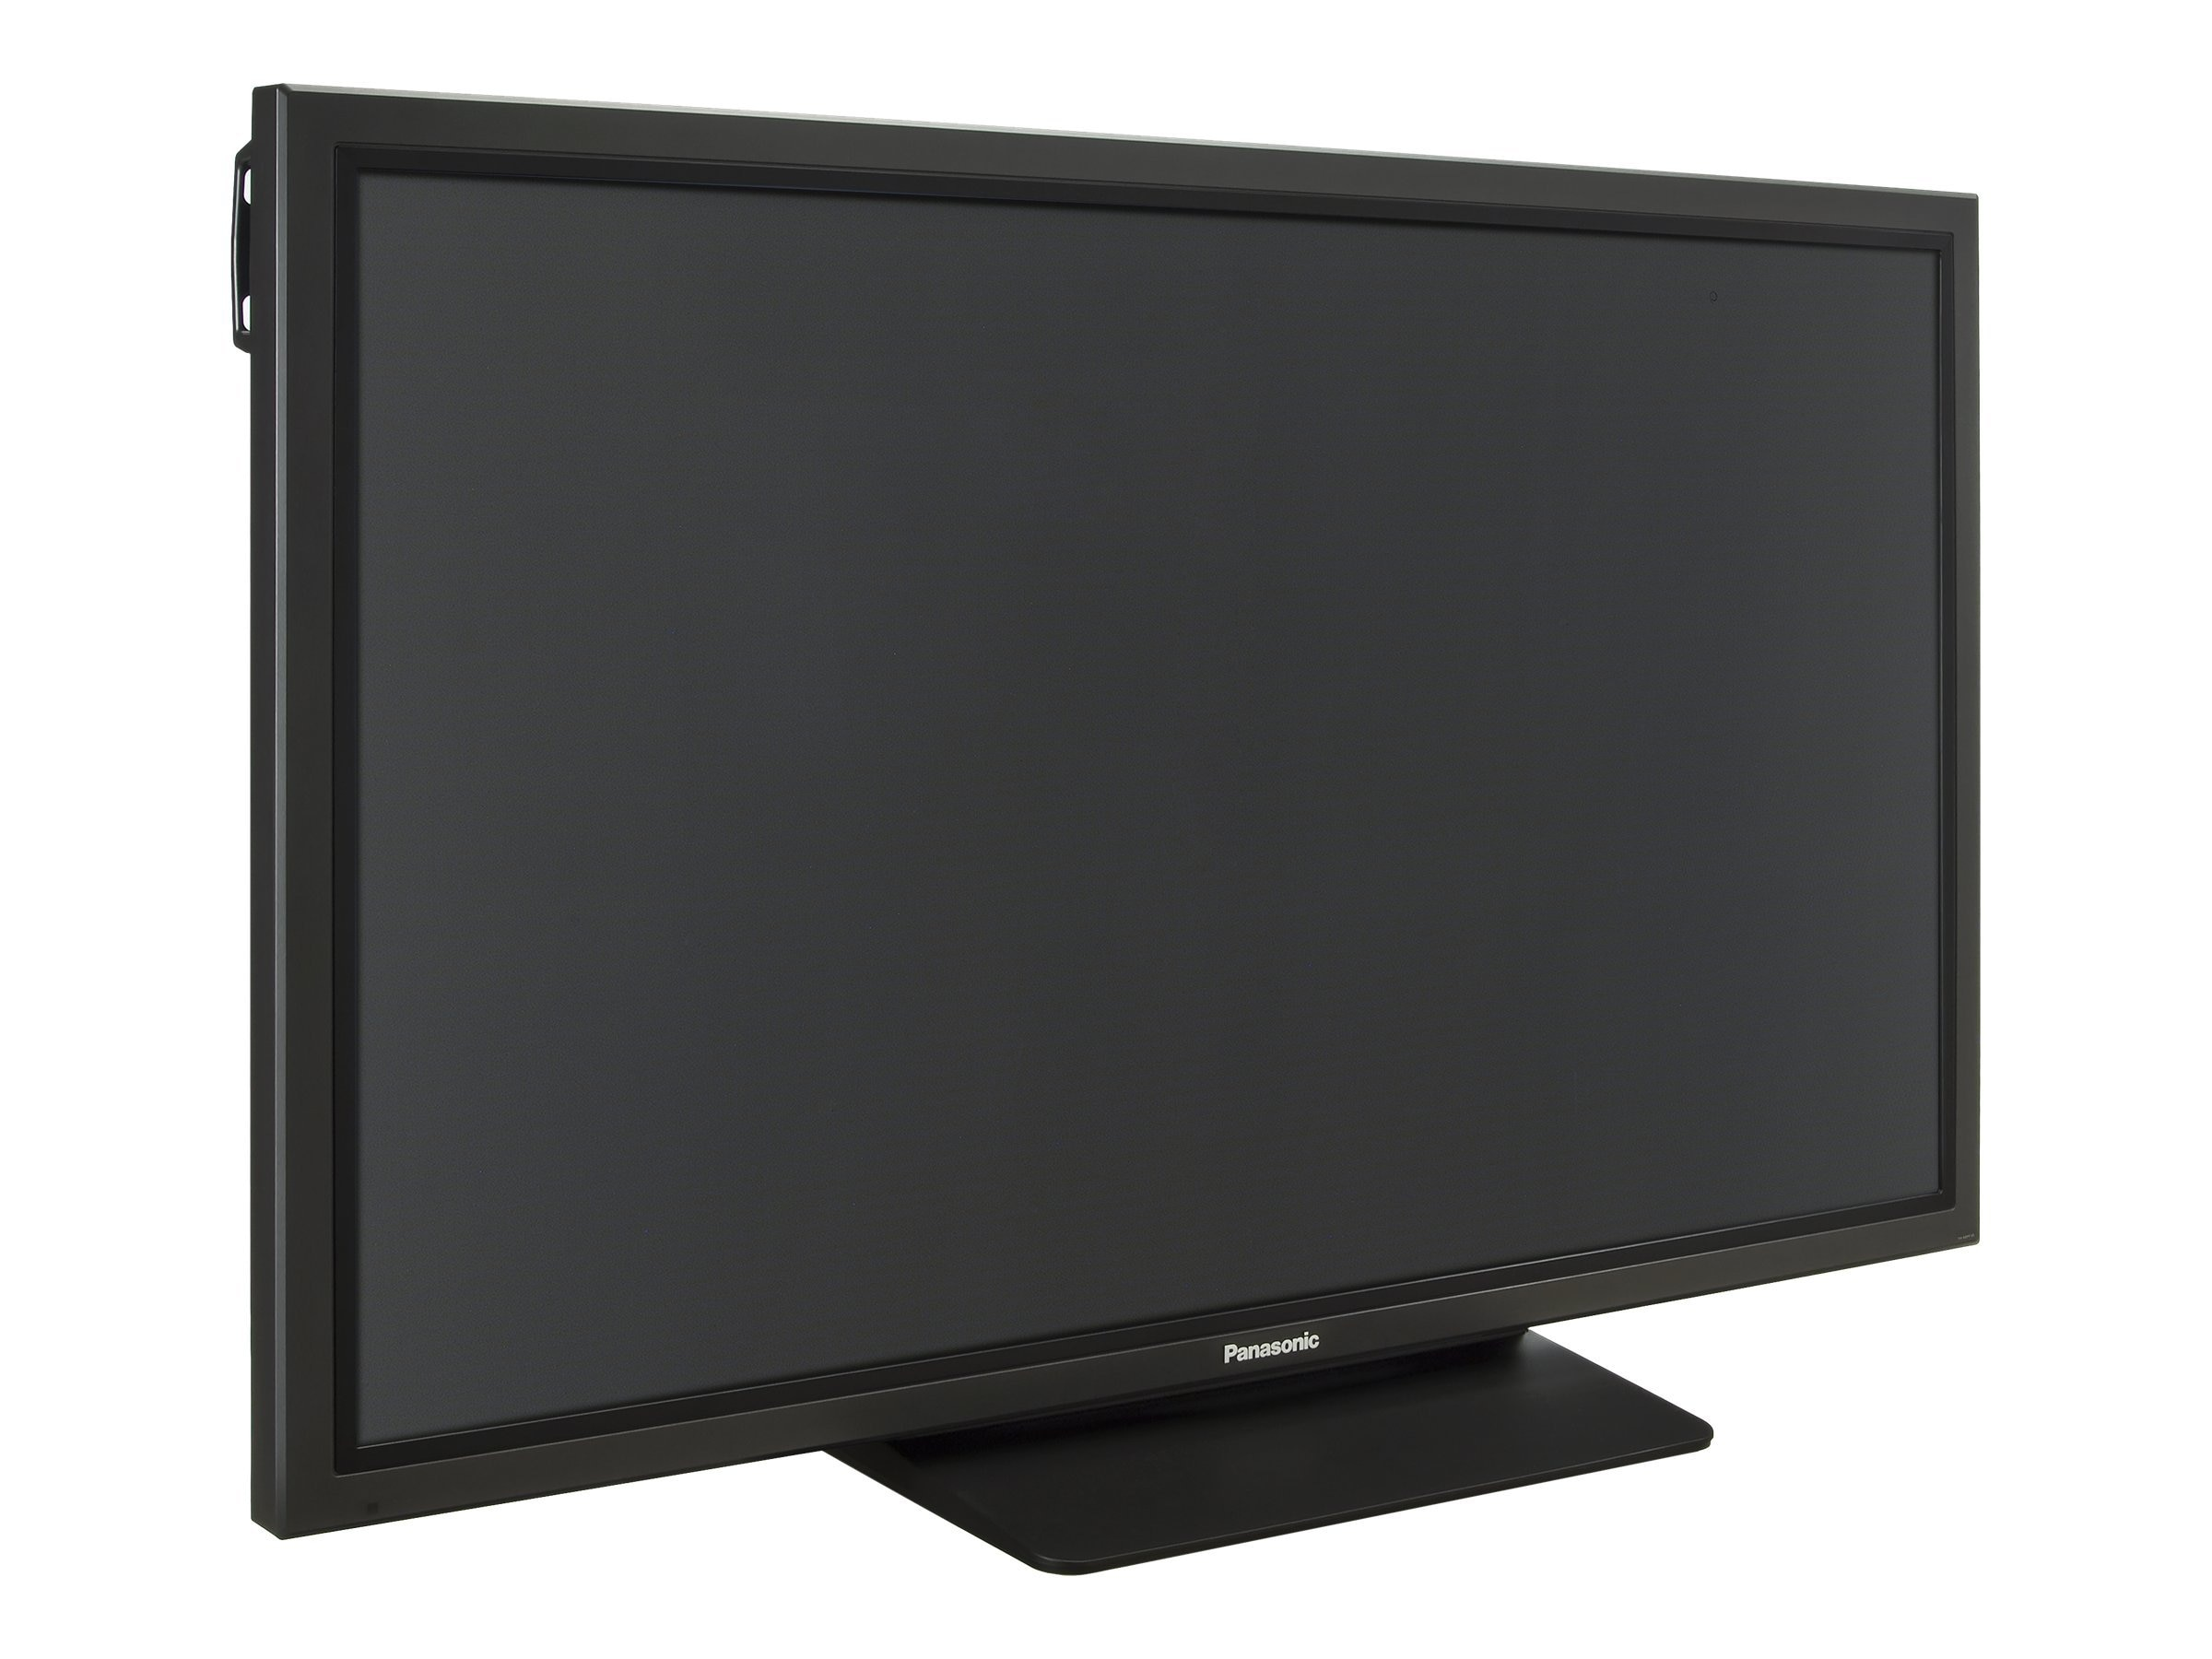 Panasonic TH60PF30U Image 3